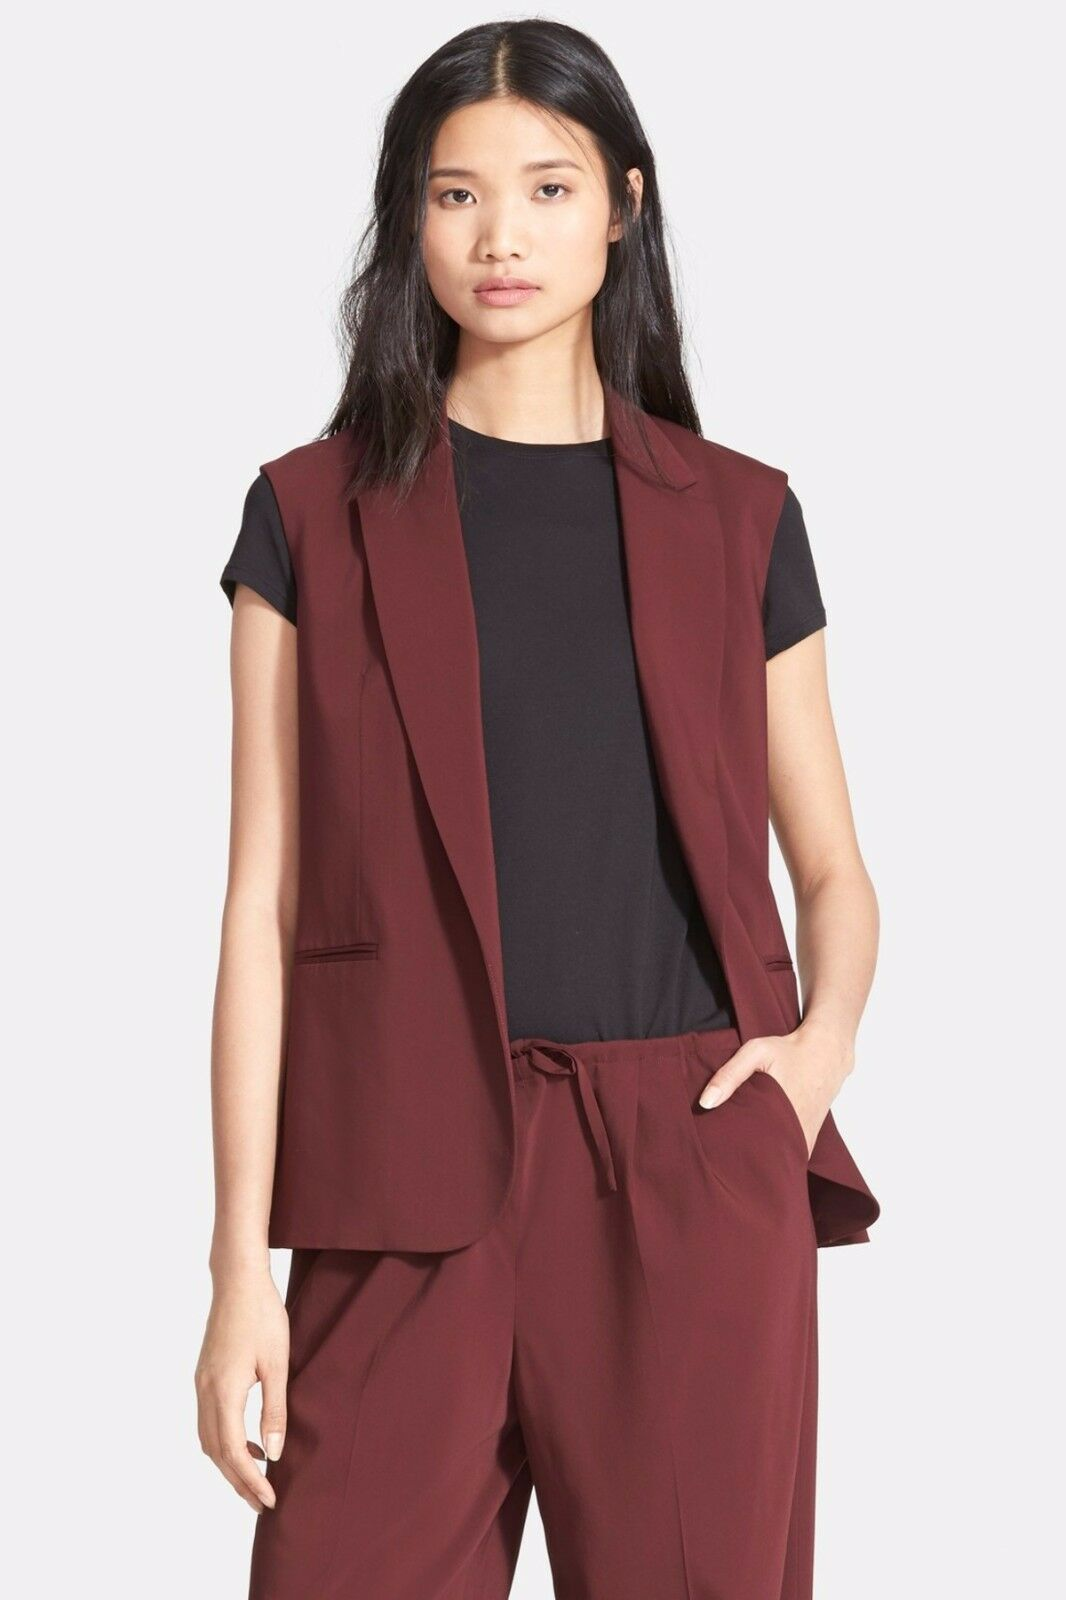 Theory Adar Sleeveless Blazer Sizes 6, 8 color Beetroot NWT Made In USA